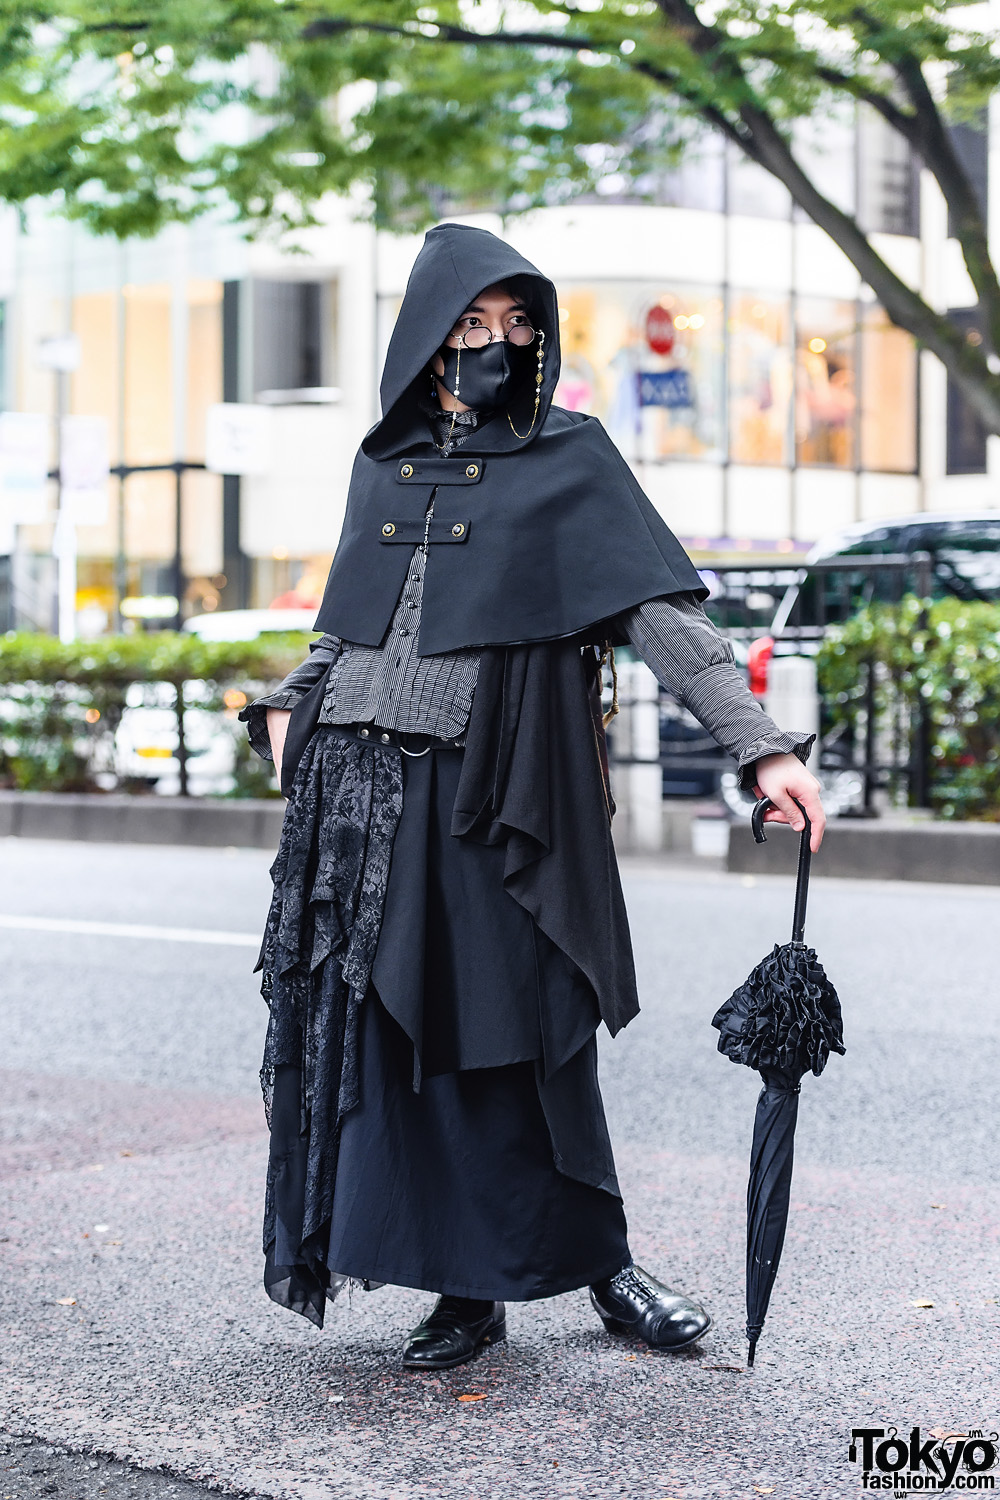 Dark Tokyo Gothic Street Style w/ Atelier BOZ Hooded Cape, Moi-Meme-Moitie Asymmetric Skirt, Ruffle Umbrella & Dress Shoes